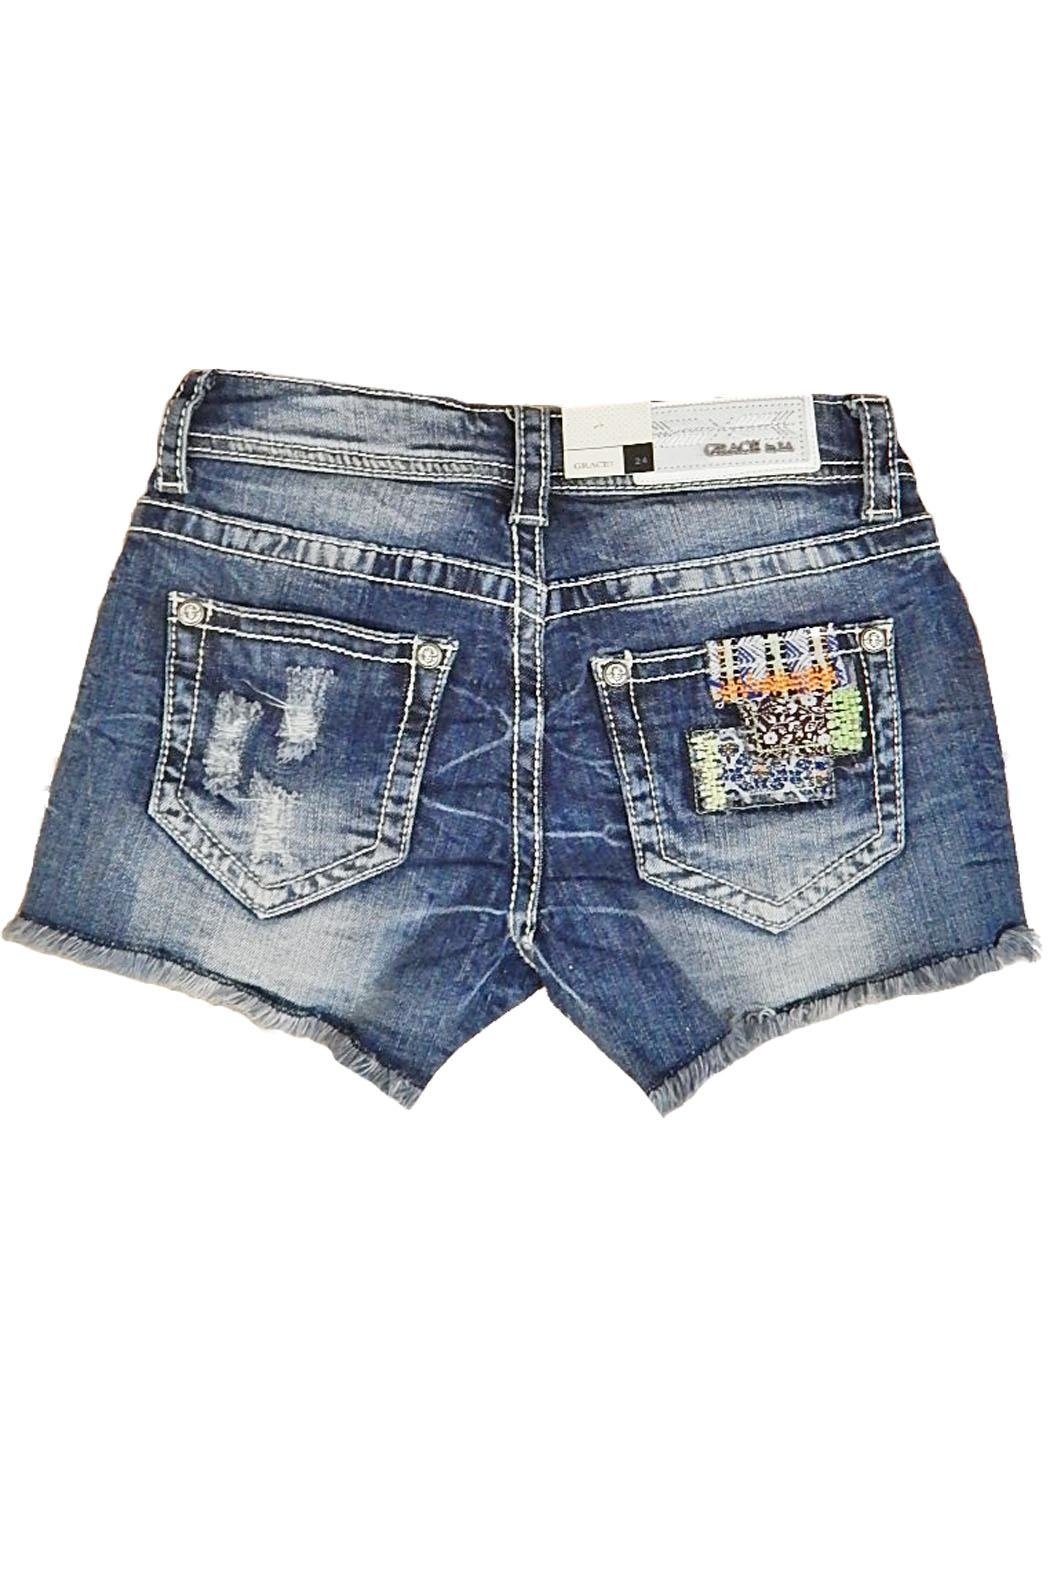 Grace in L.A. Indigo Patch Shorts - Front Full Image